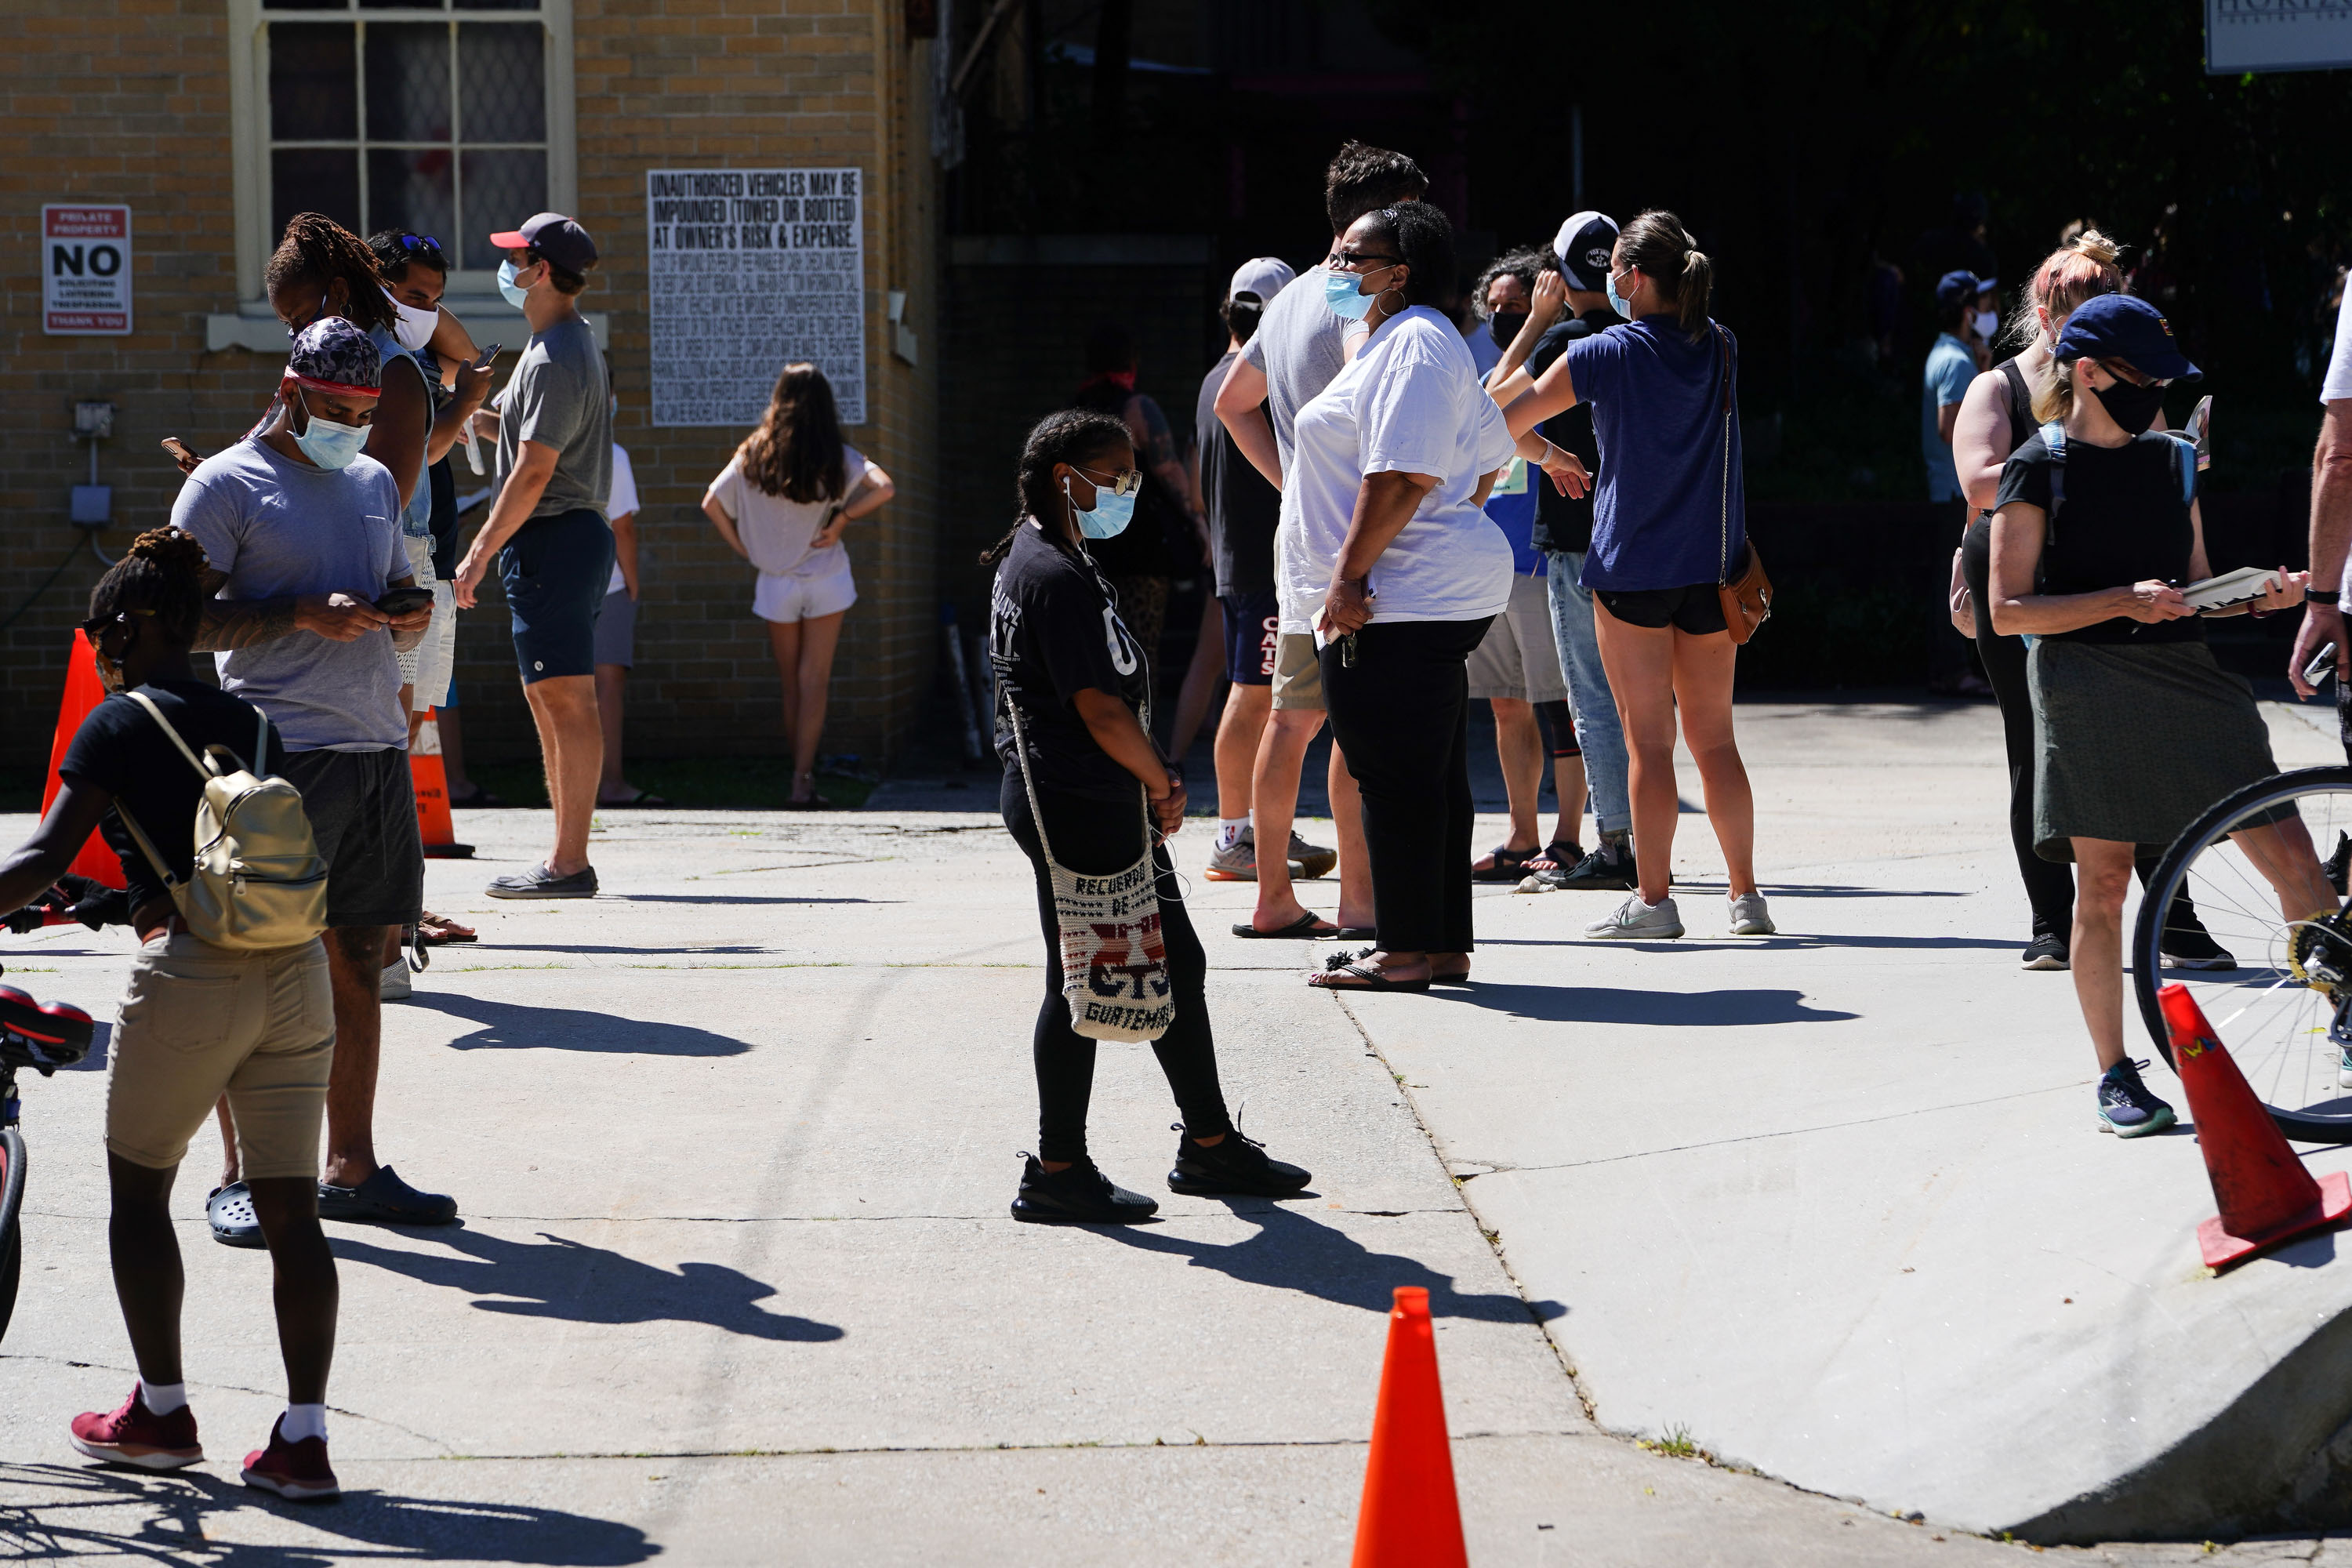 People wait in line to get tested for Covid-19 at a testing site in Atlanta on July 11.